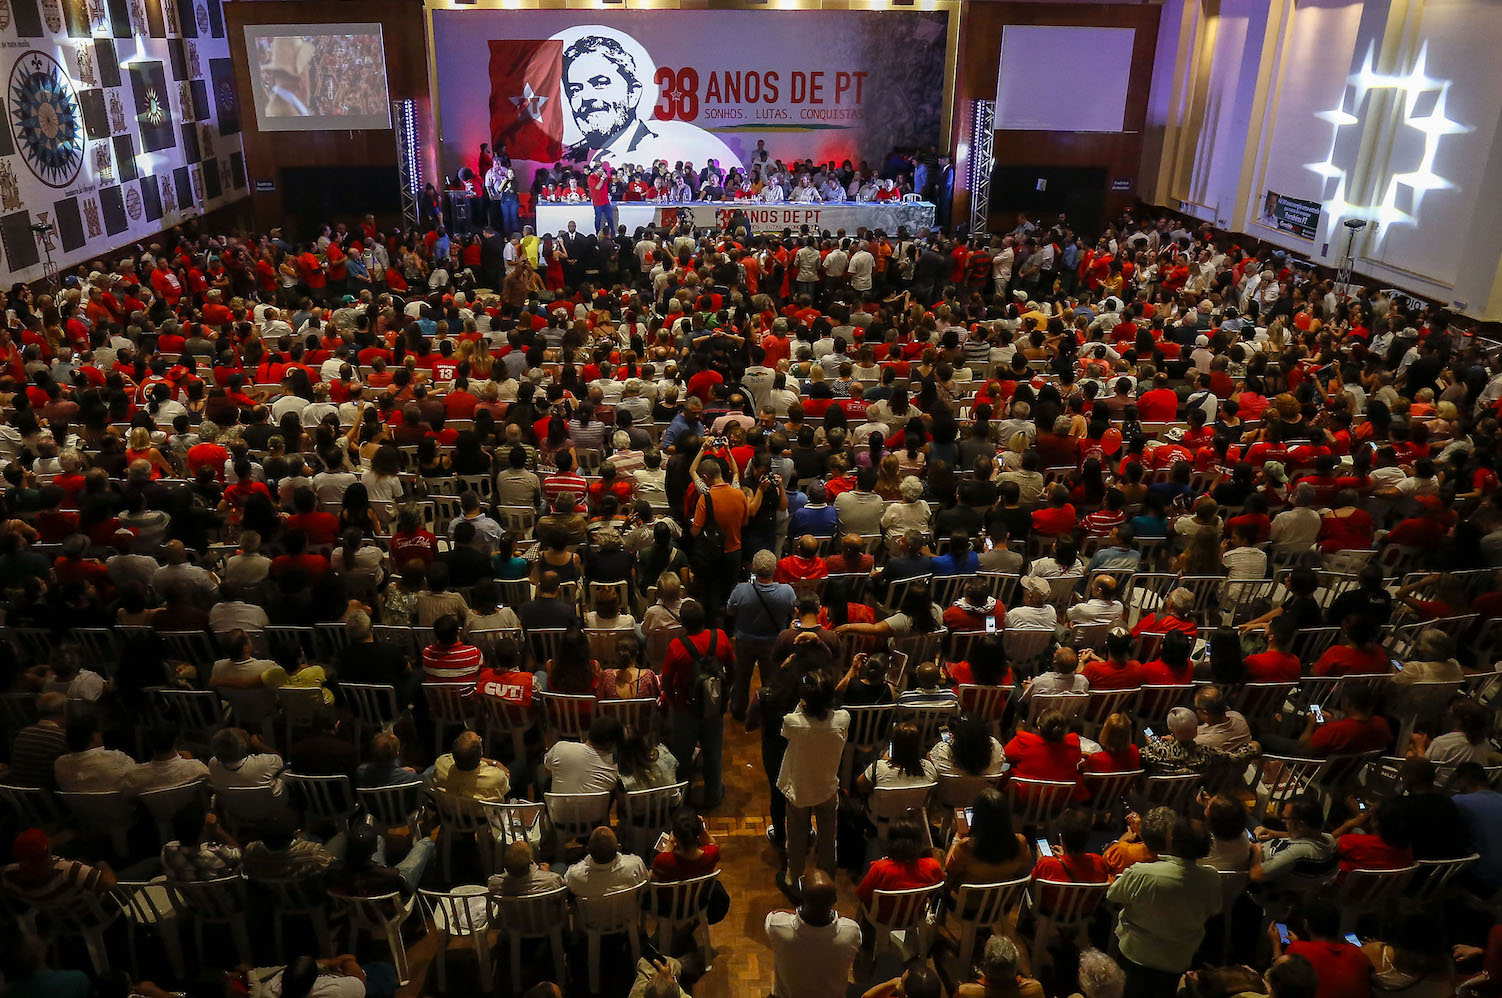 General view of the commemoration of the 38th anniversary of the Workers Party (PT) in Sao Paulo, Brazil on February 22, 2018. / AFP PHOTO / Miguel SCHINCARIOL        (Photo credit should read MIGUEL SCHINCARIOL/AFP/Getty Images)